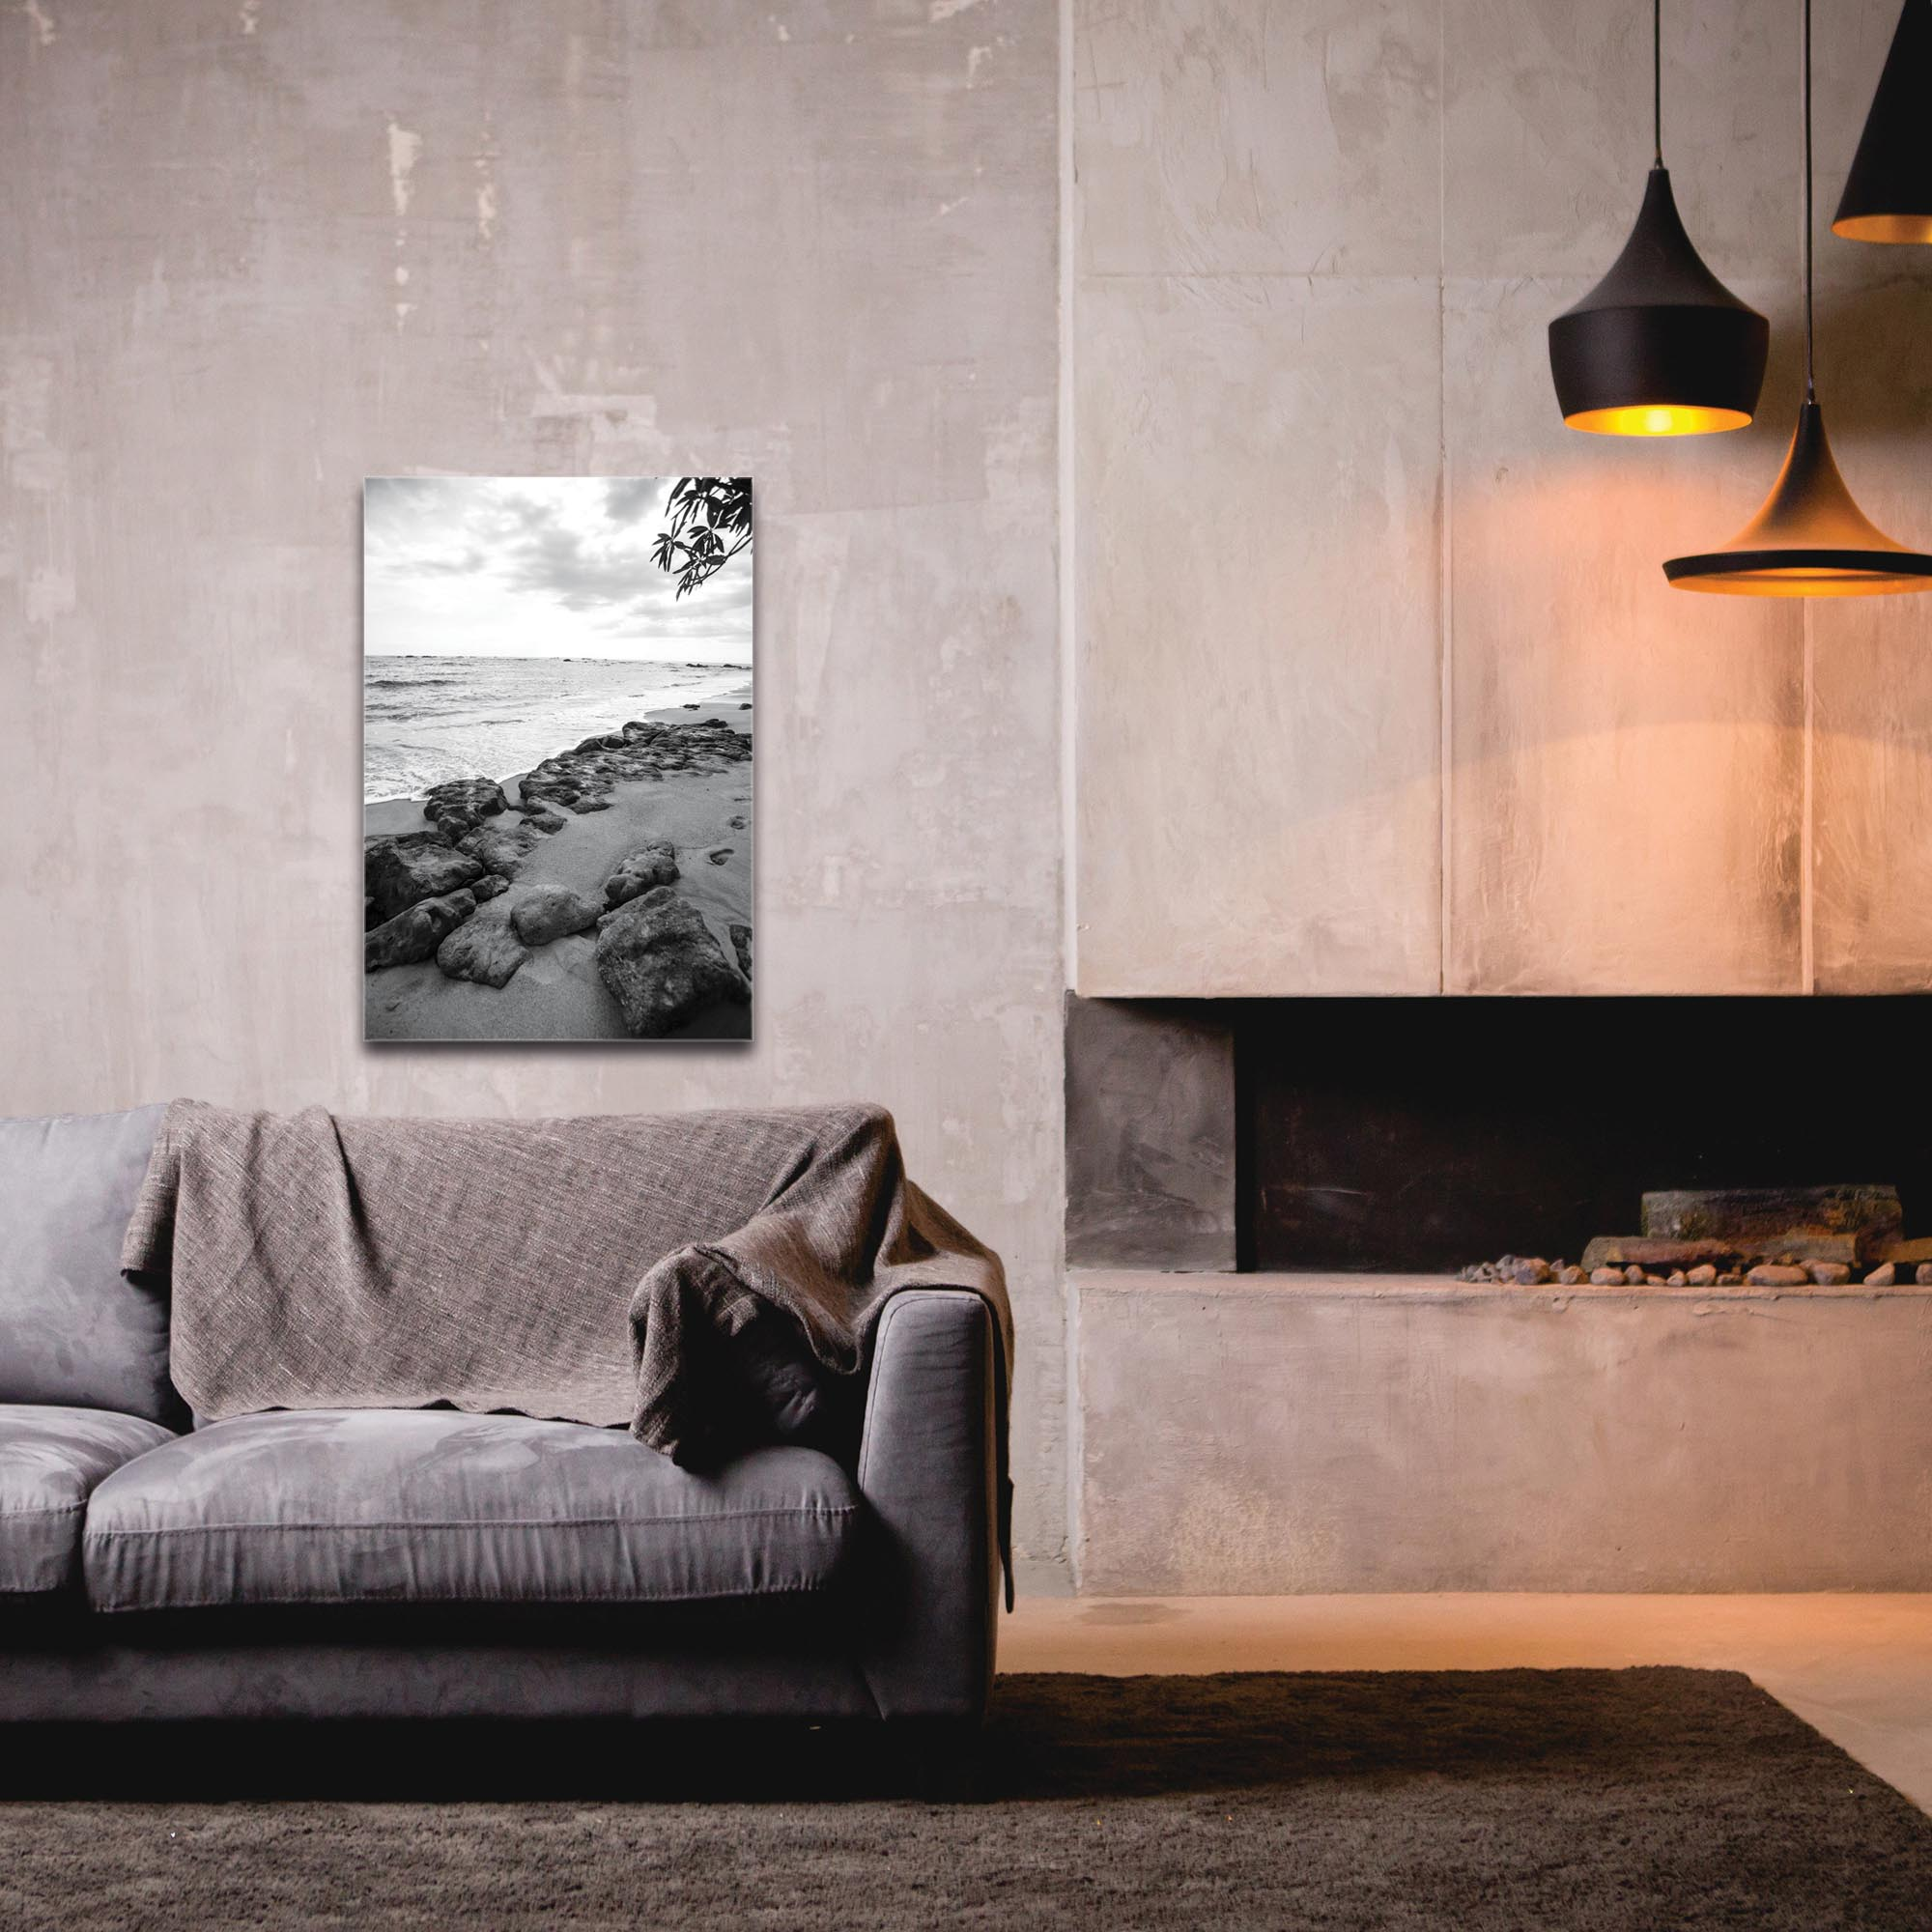 Black & White Photography 'The Coastline' - Coastal Art on Metal or Plexiglass - Image 3